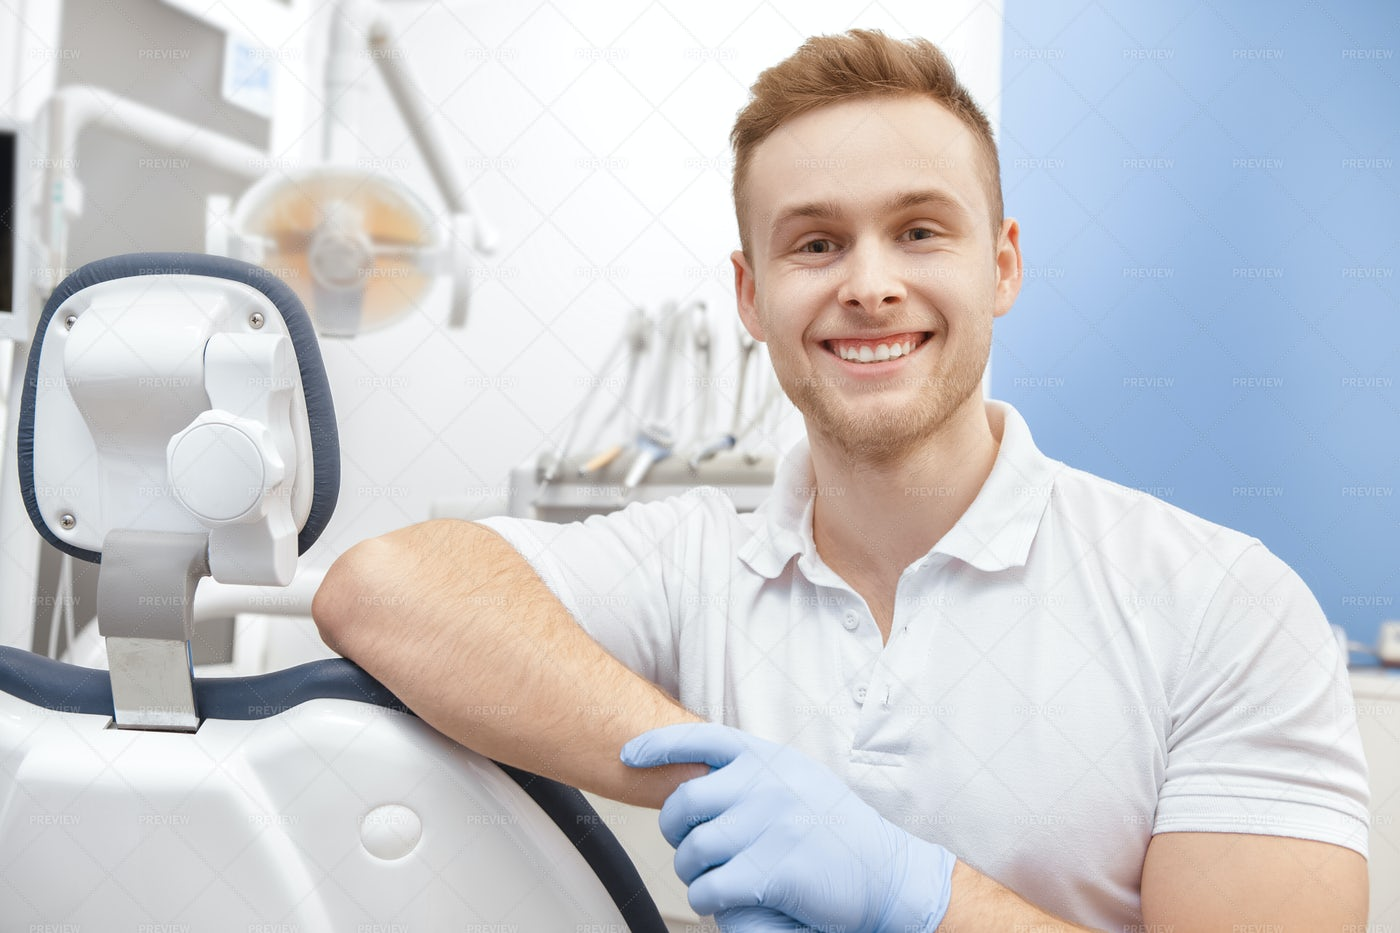 Dentist In His Clinic: Stock Photos